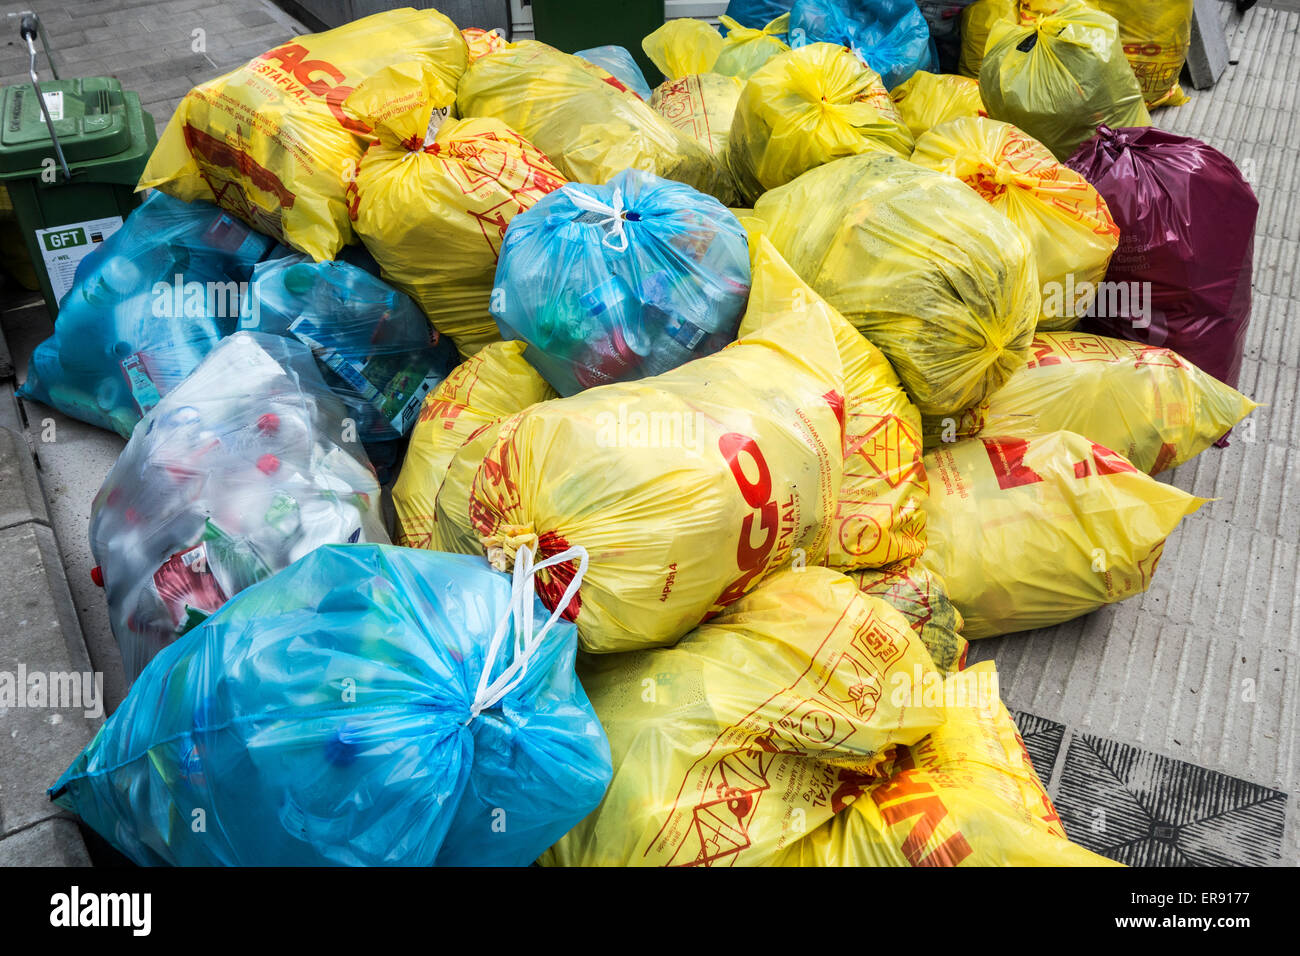 Piled up rubbish bags with household refuse blocking pavement due to strike by waste processing firm - Stock Image